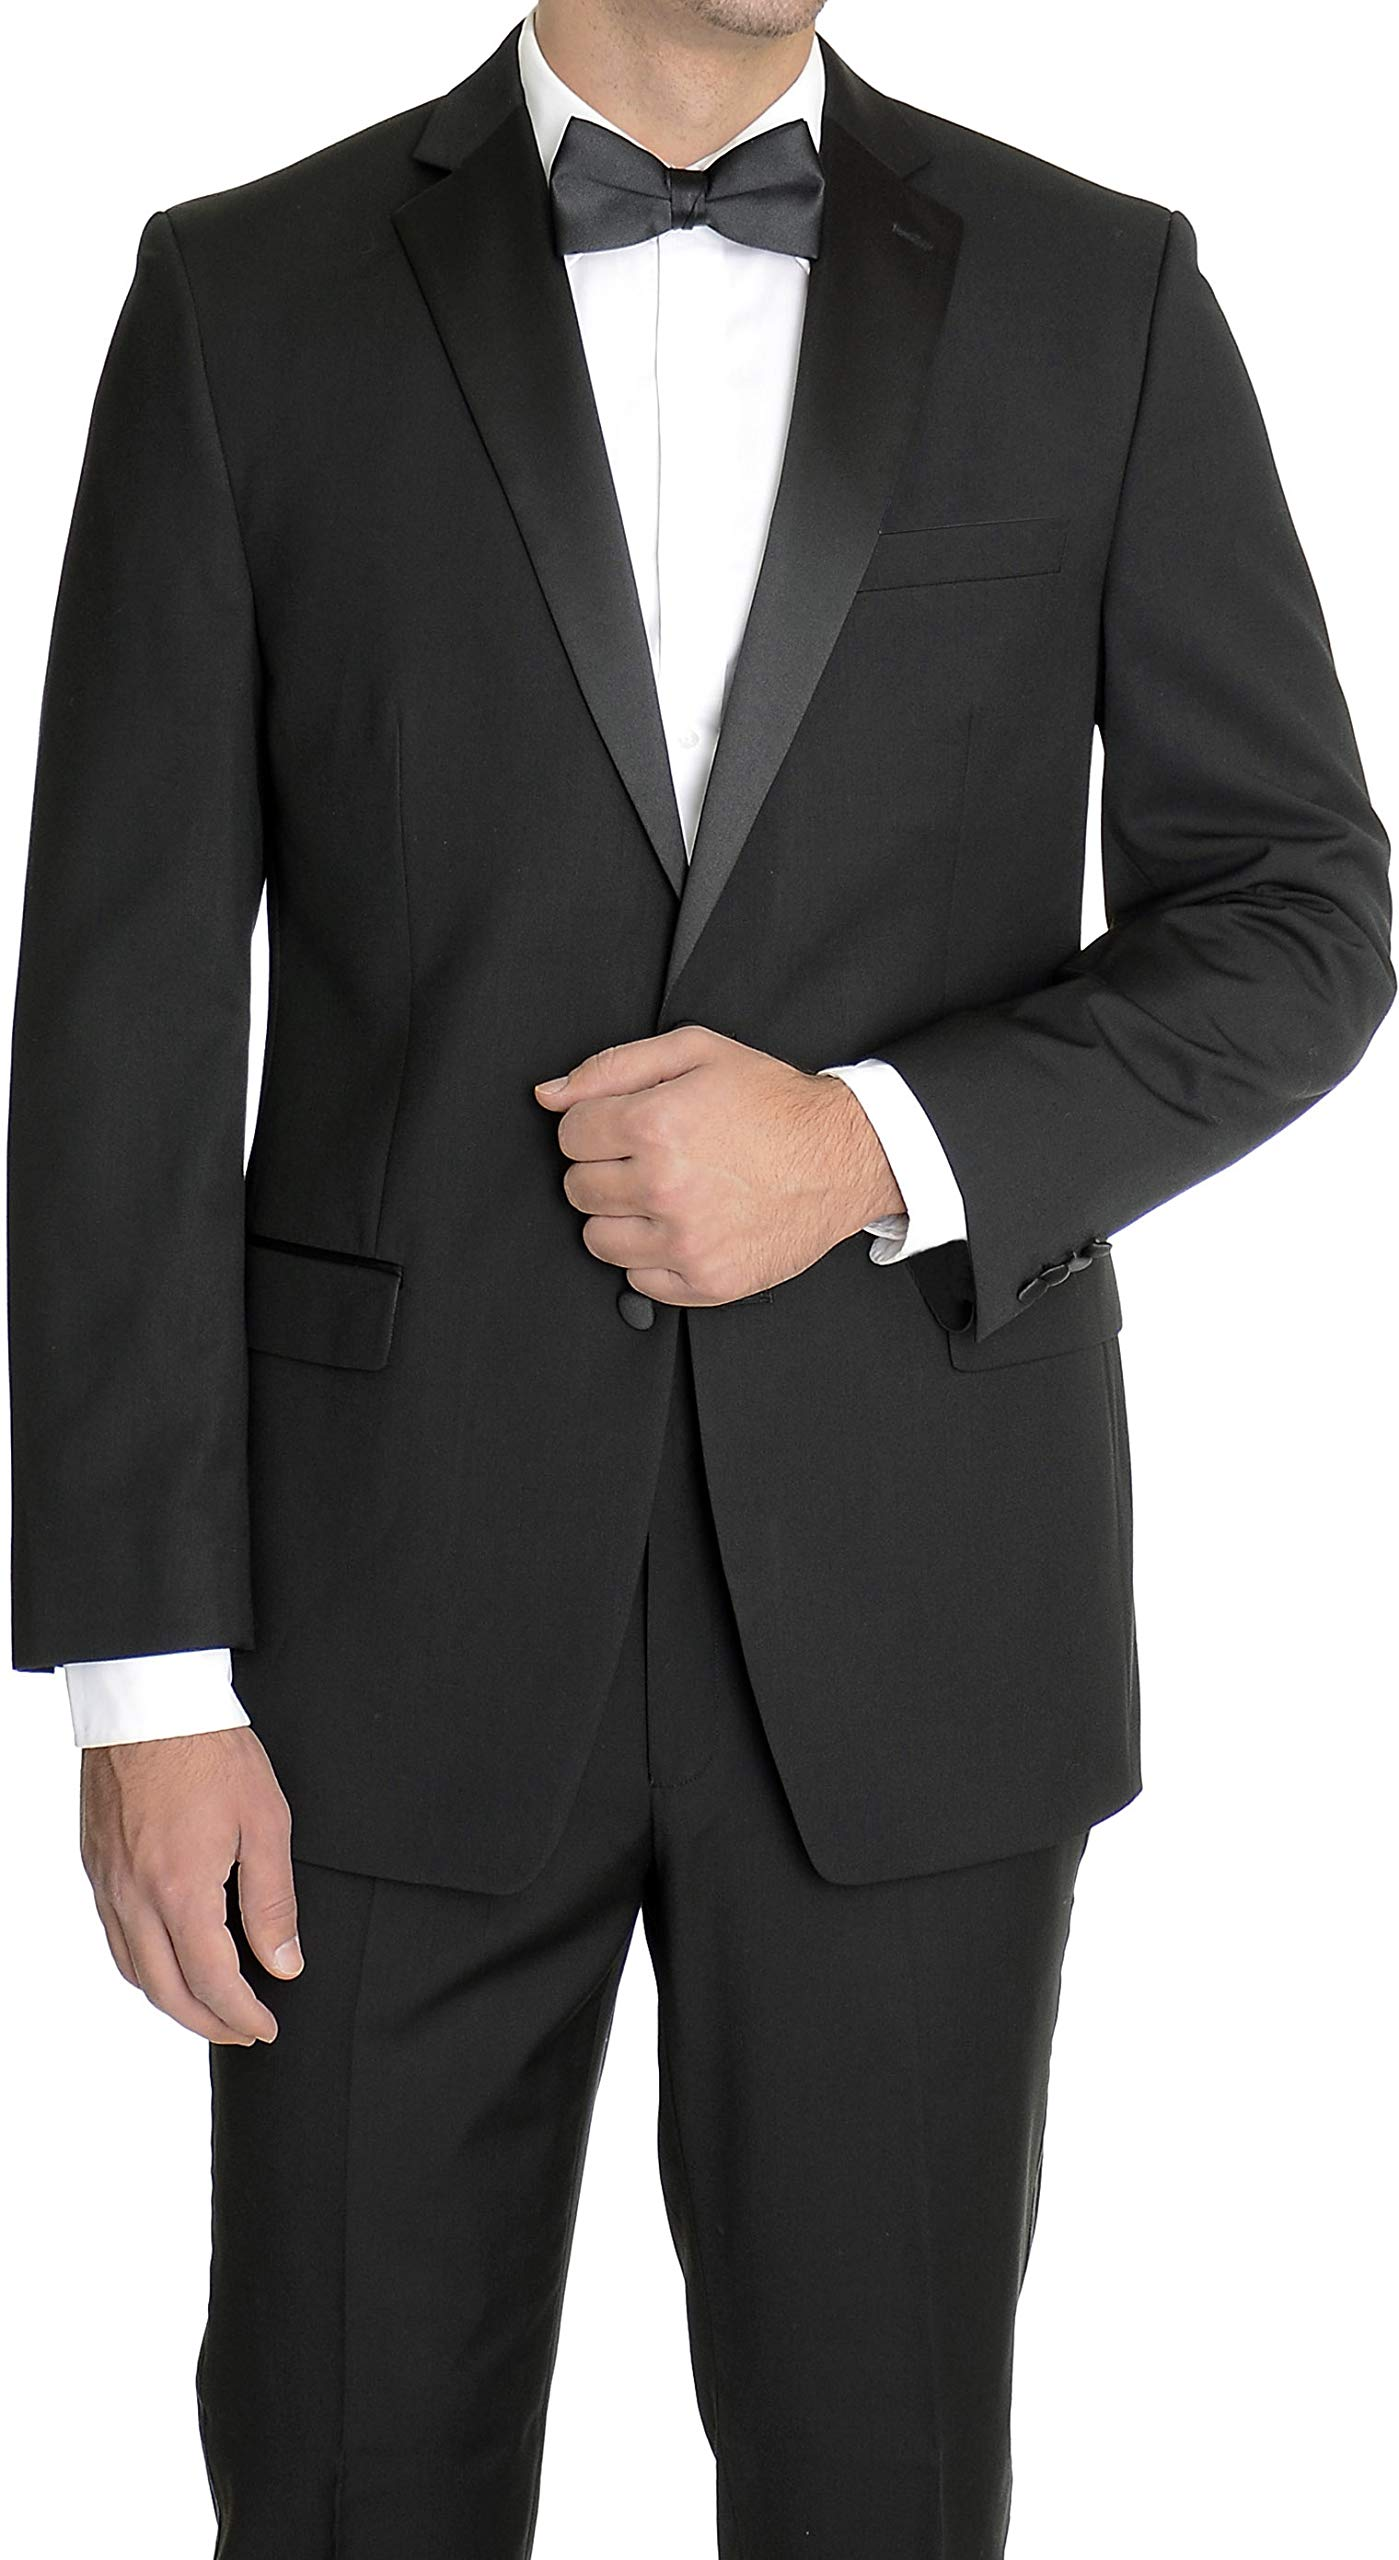 New Mens 5 Piece (5pc) Complete Single Breasted Black Tuxedo Suit, 44 Regular by New Era Factory Outlet